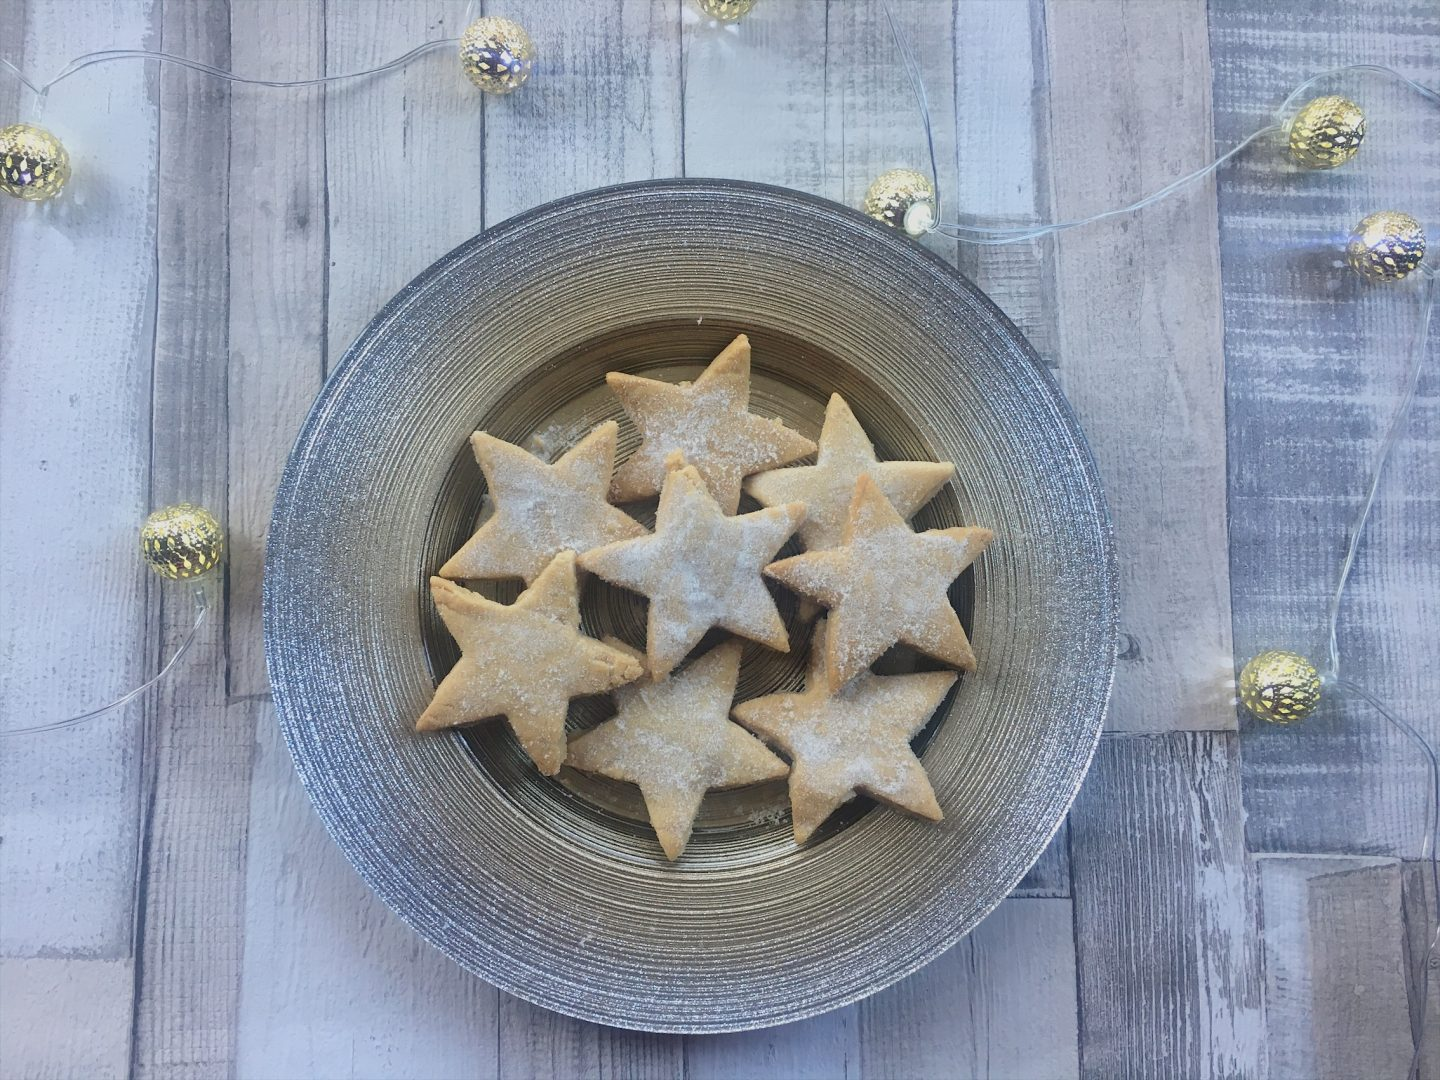 Sugary star-shaped shortbread, Christmas gifts for foodies